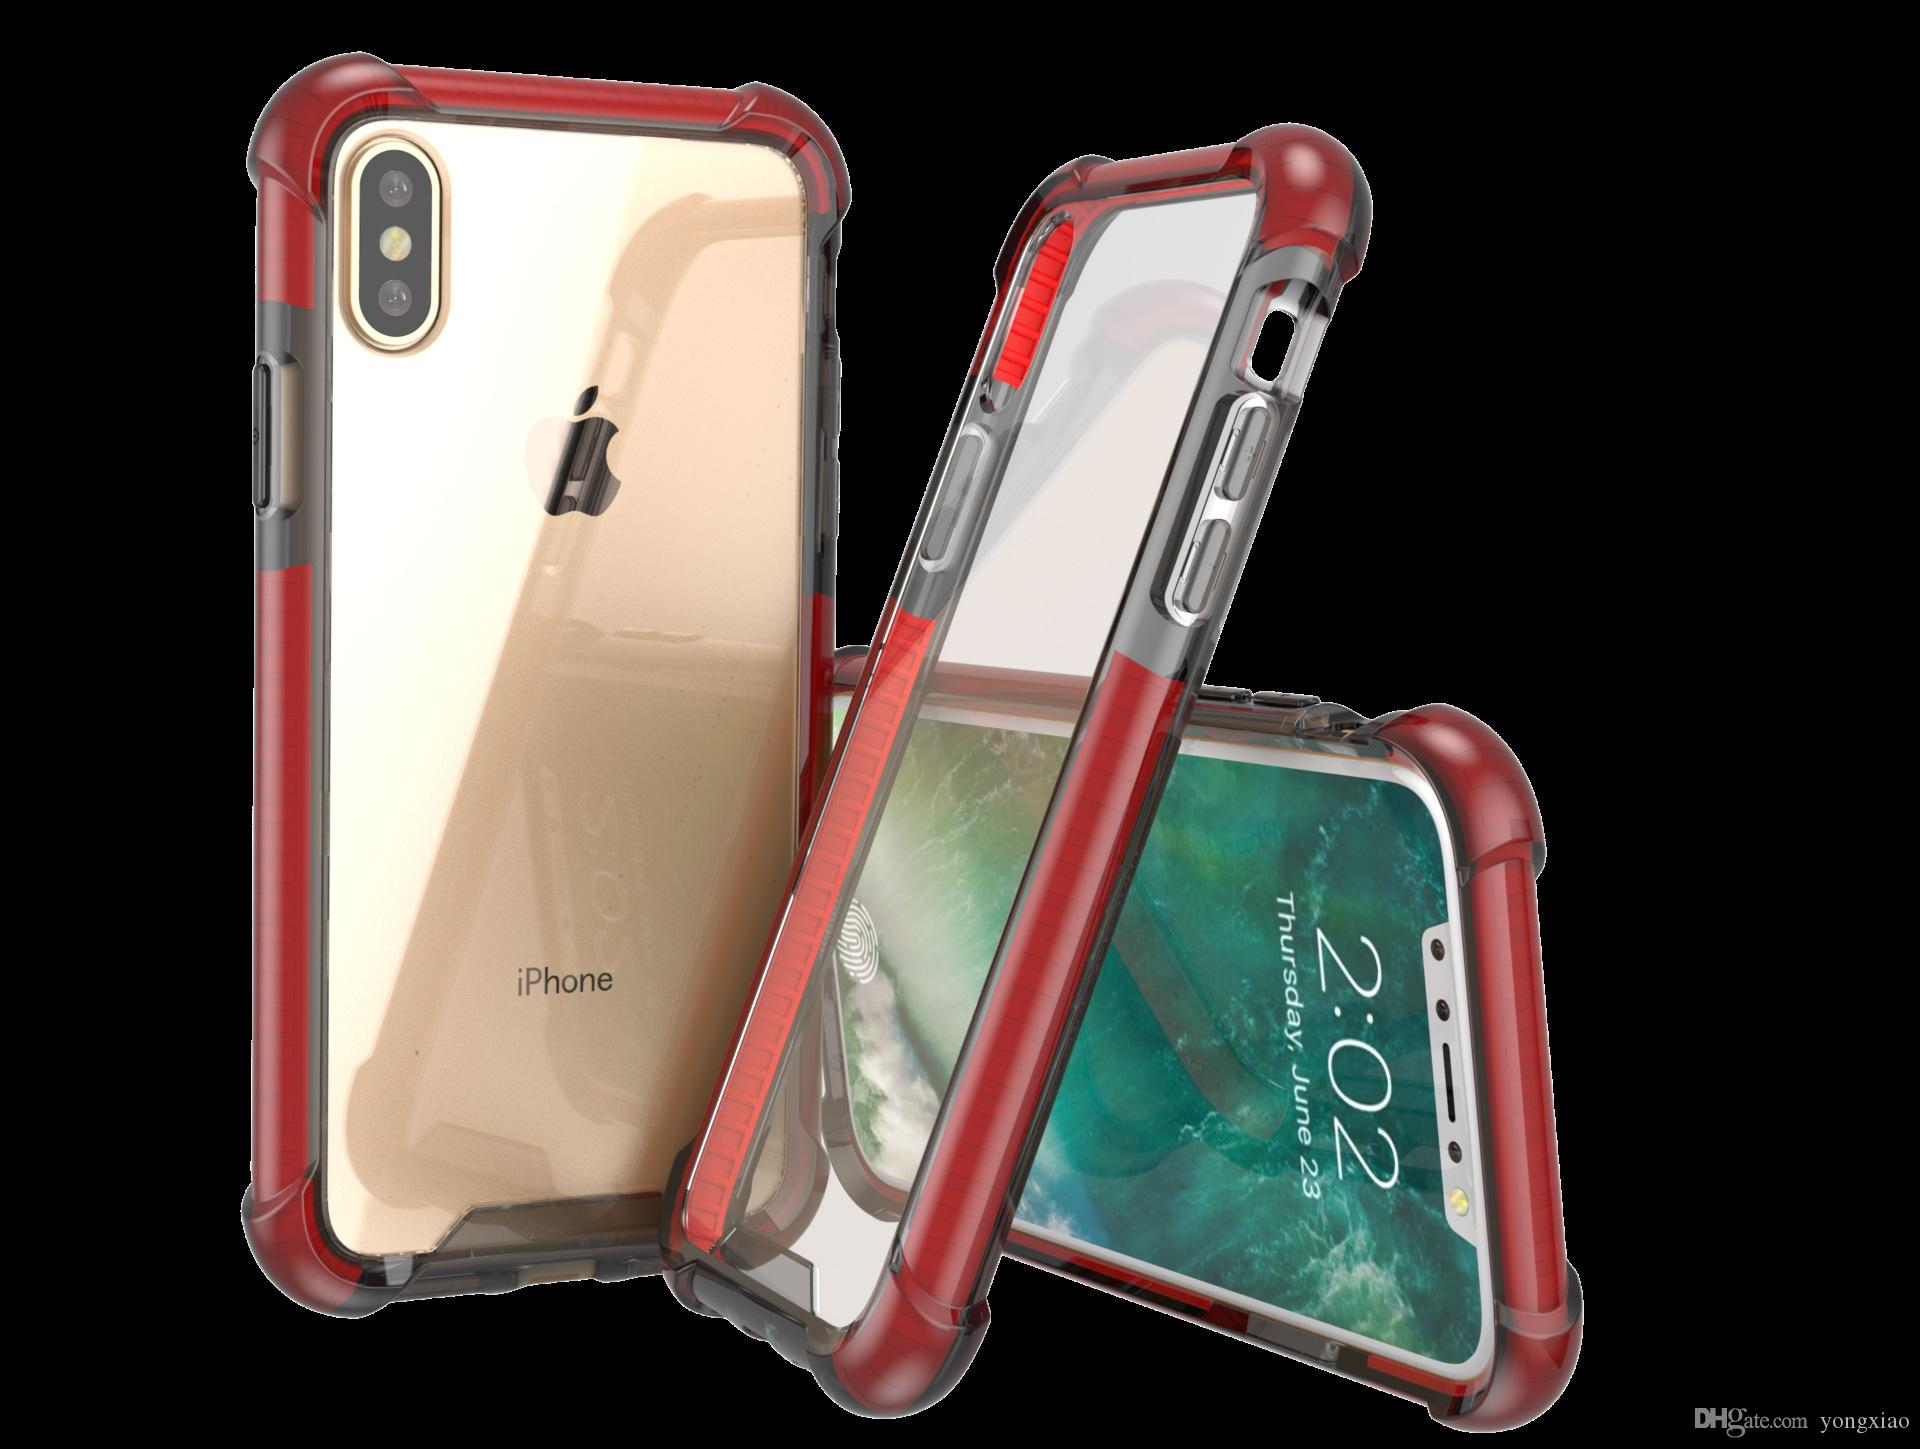 reputable site 373b9 a3a51 Evo Color Bumper Transparent Clear Acrylic Impact Shockproof impact  Protective Case Gasbag Corners Cover for iPhone XR XS Max 6 7 8